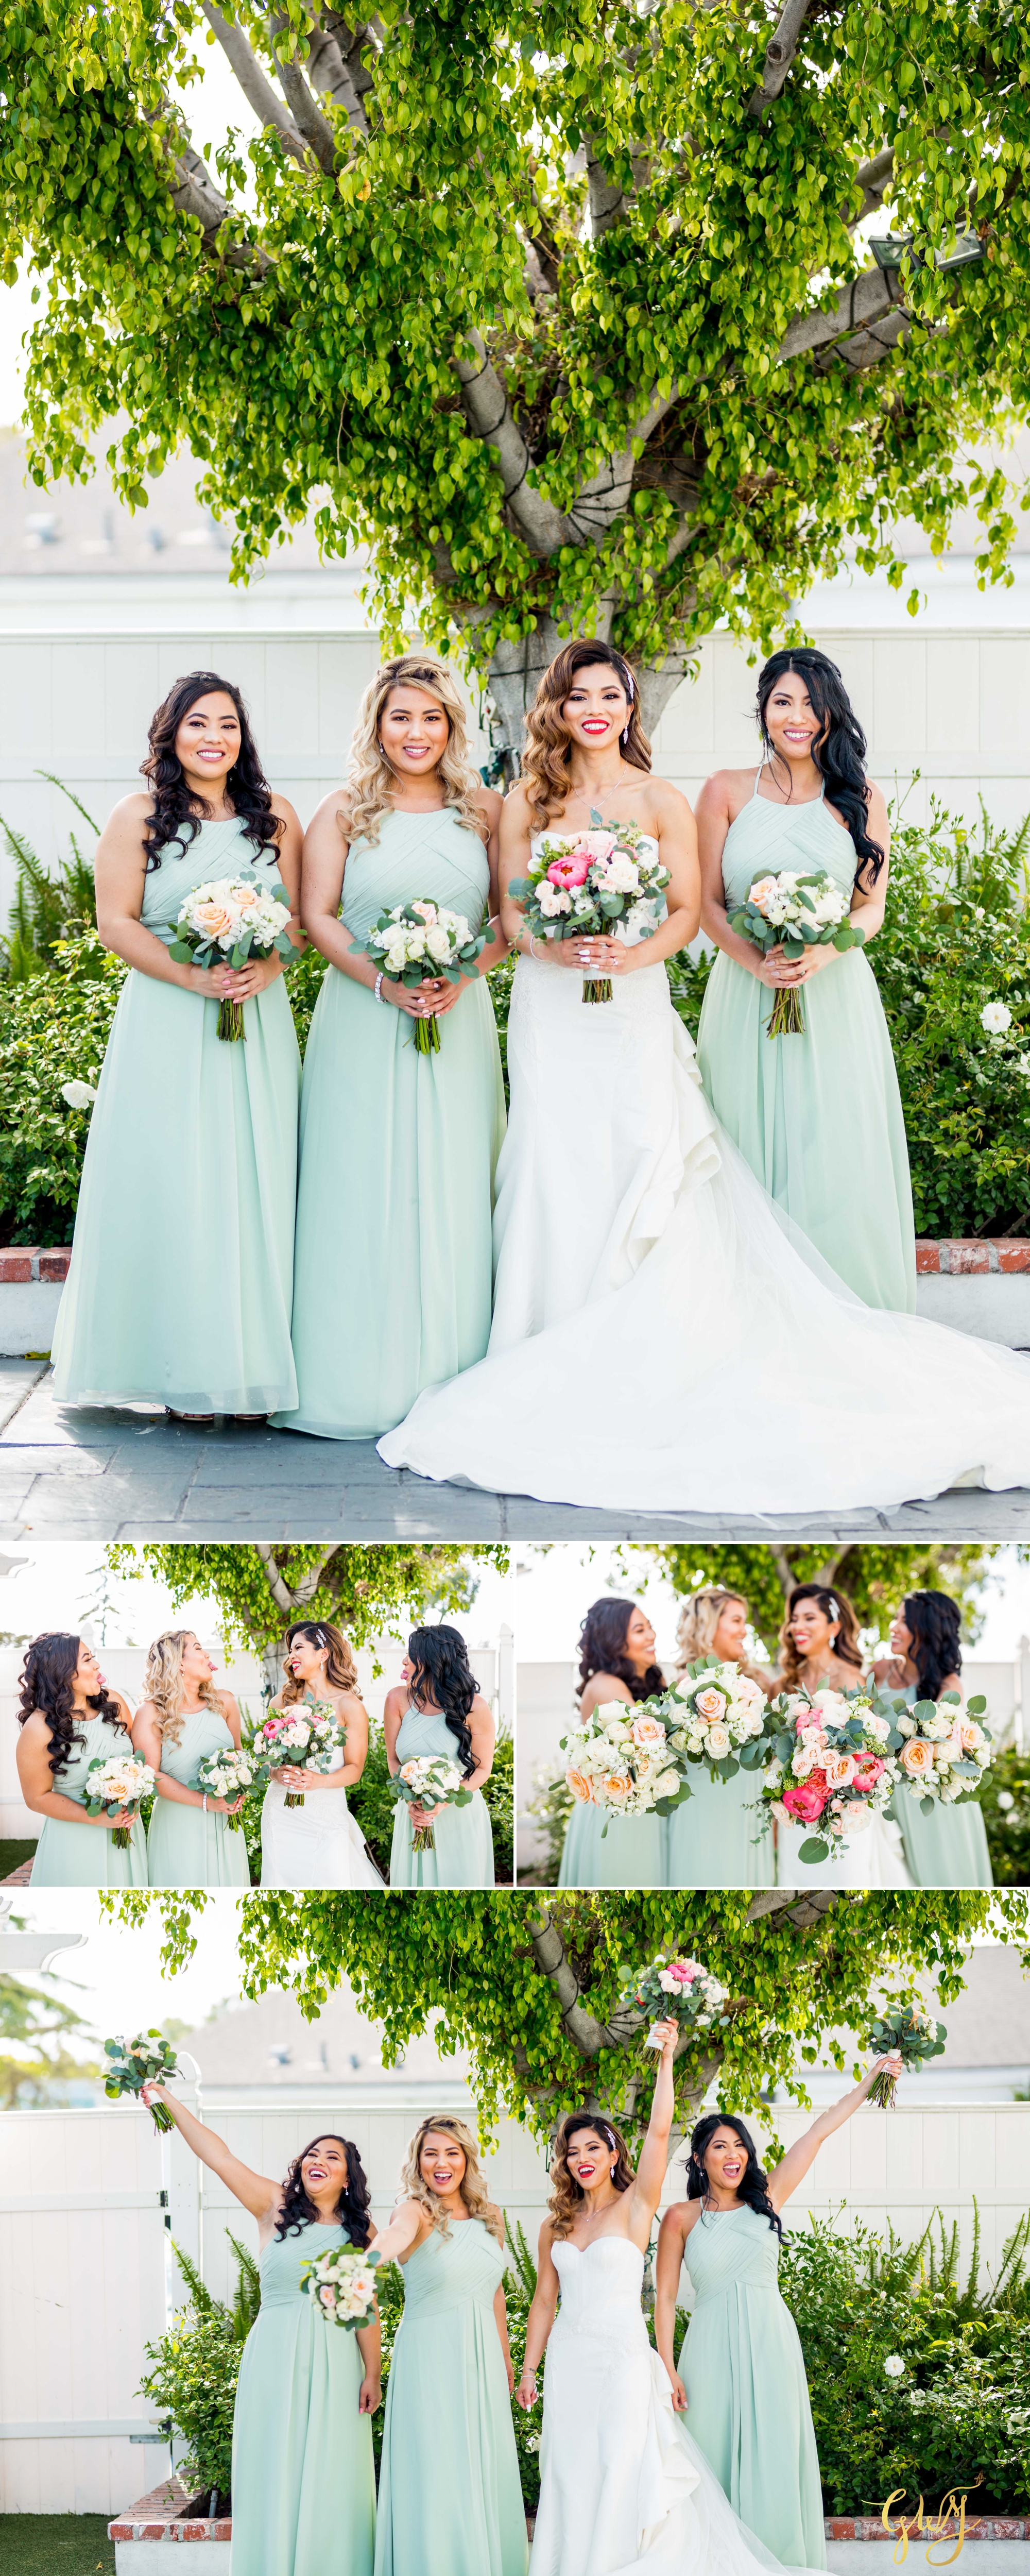 Andy + Caselyn's White House Event Center Orange County Spring Wedding by Glass Woods Media 17.jpg